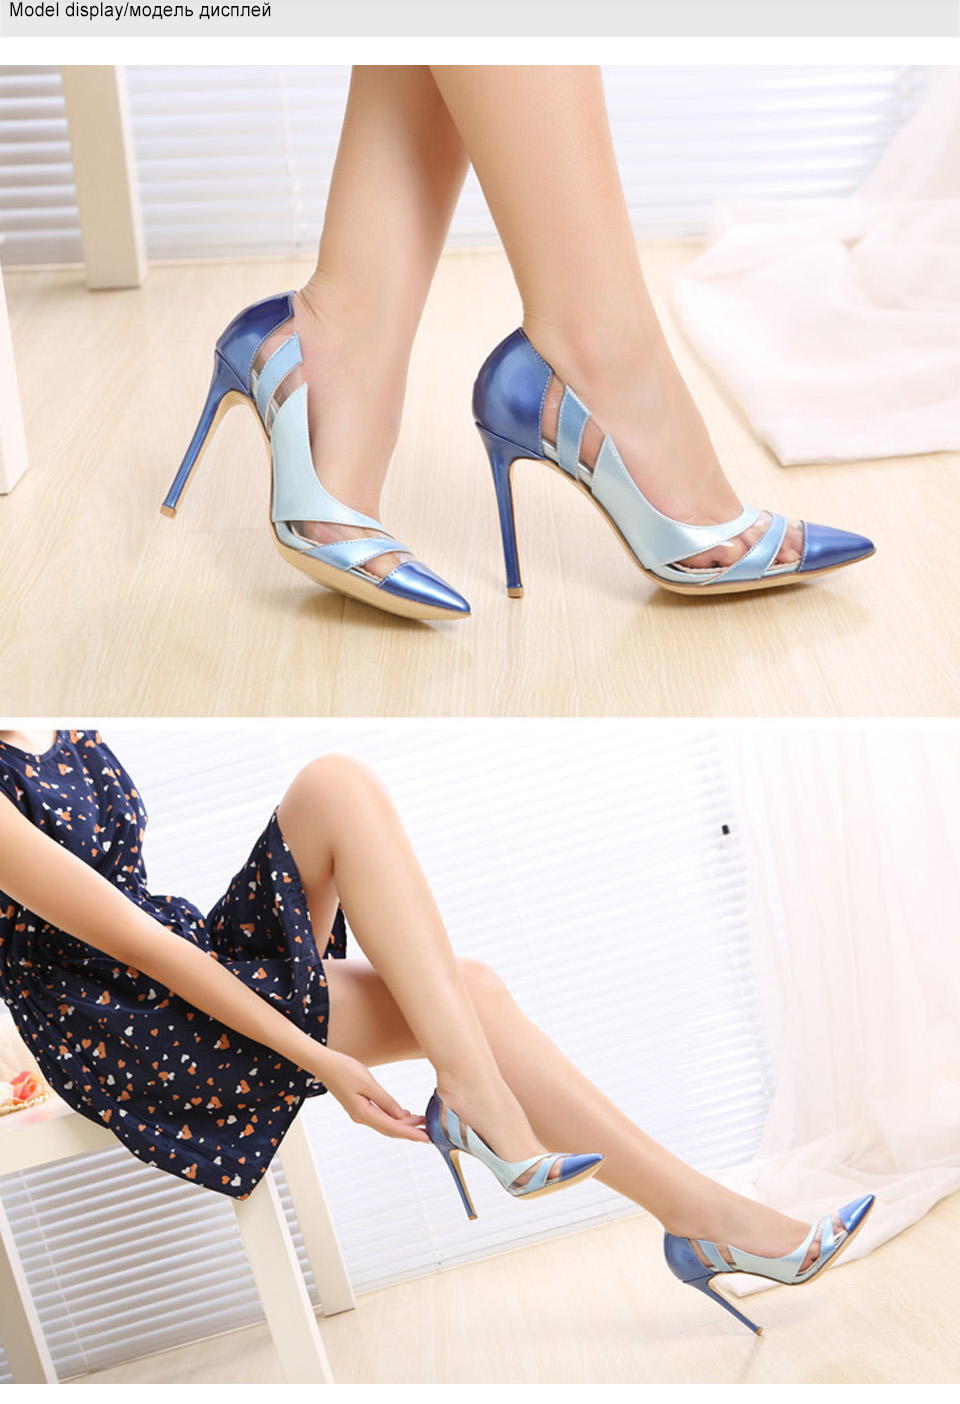 women shoes 5